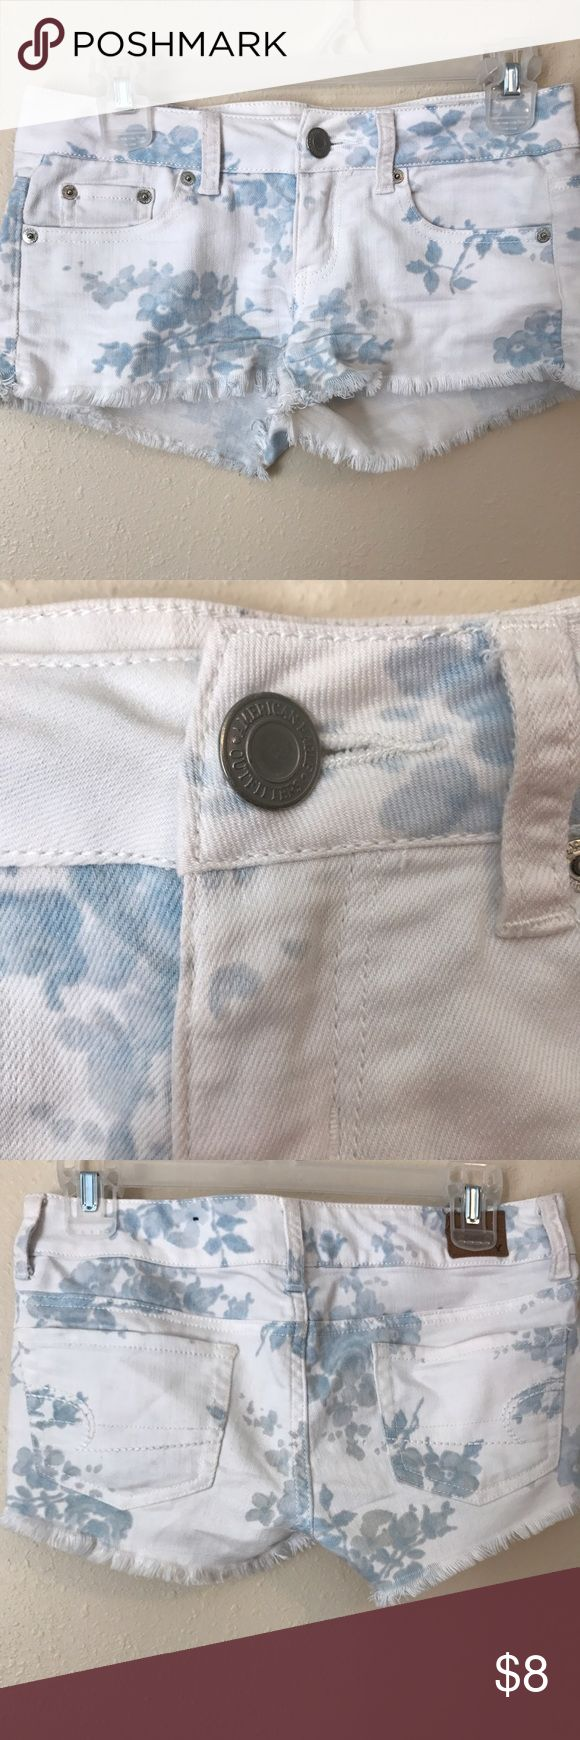 Frayed shorts Baby blue and white floral pattern. Really comfortable shorts bought from AE outfitters American Eagle Outfitters Shorts